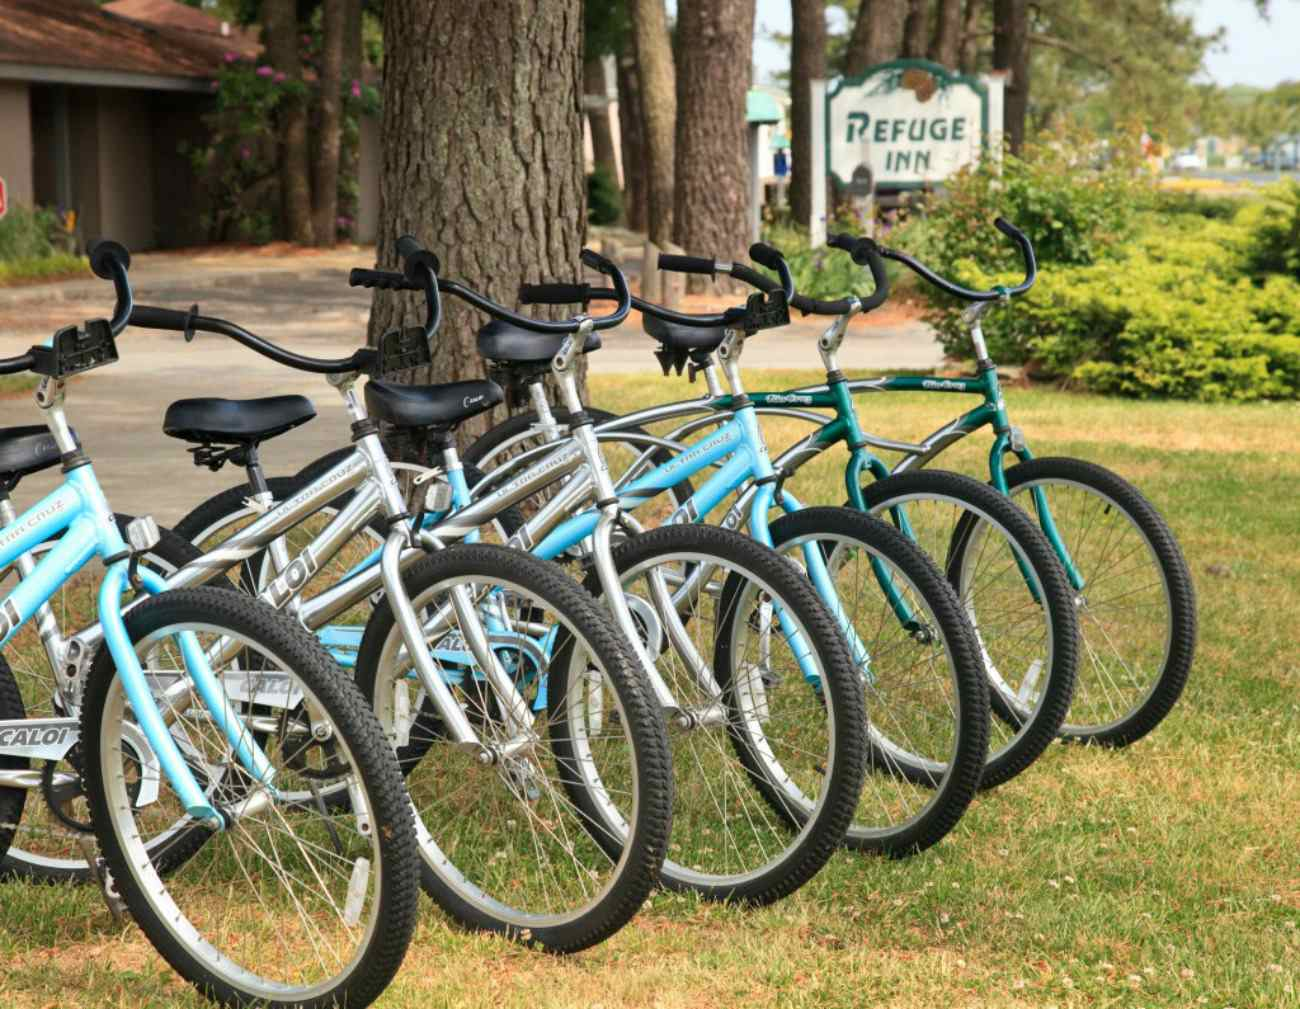 Bikes lined up as part of Bike Depot